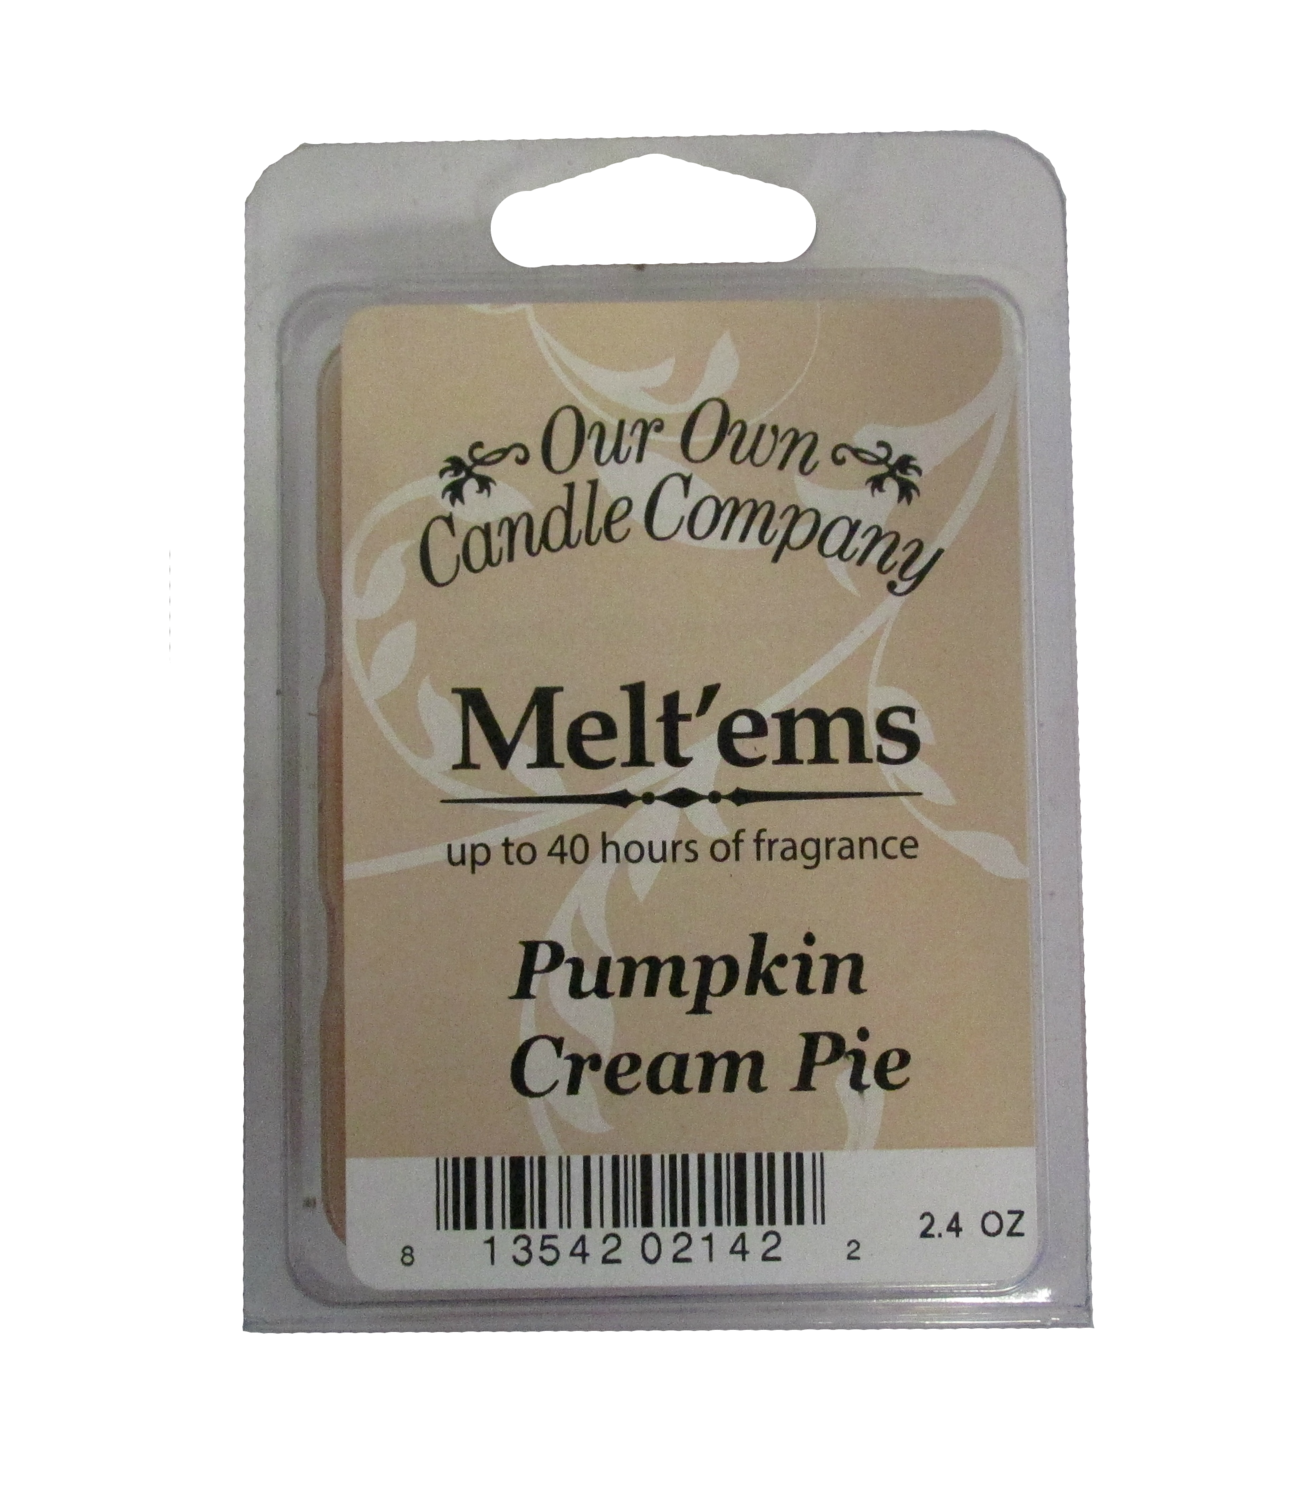 Pumpkin Cream Pie Melt'em - 6 Cube 2.4 ounce